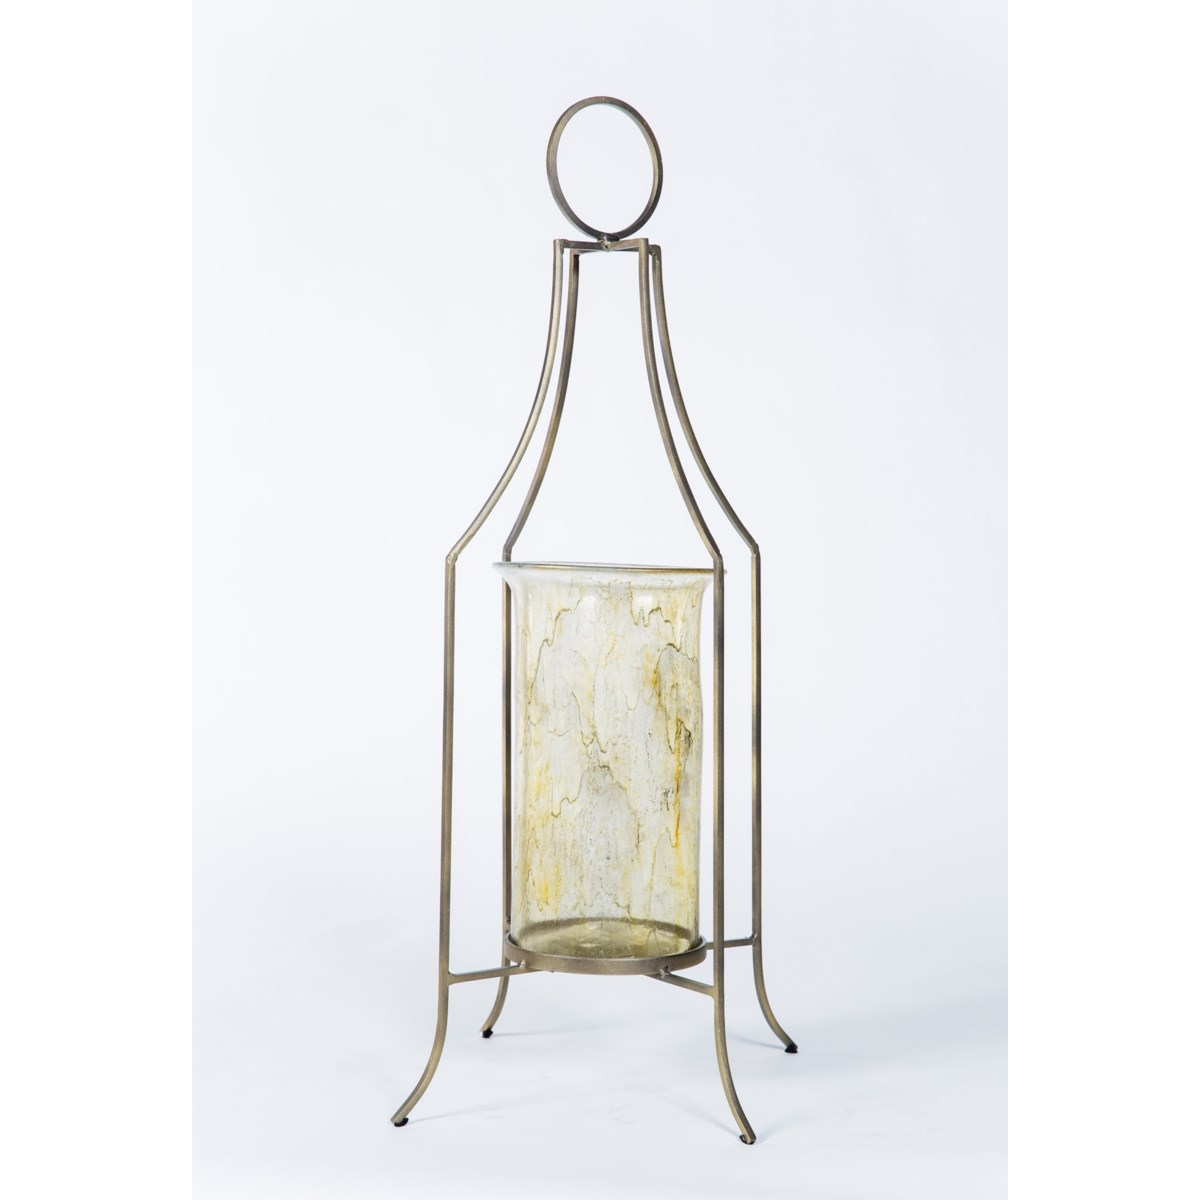 Cylinder  in Currier Gilt w/ Metal Base in Antique Brass Finish